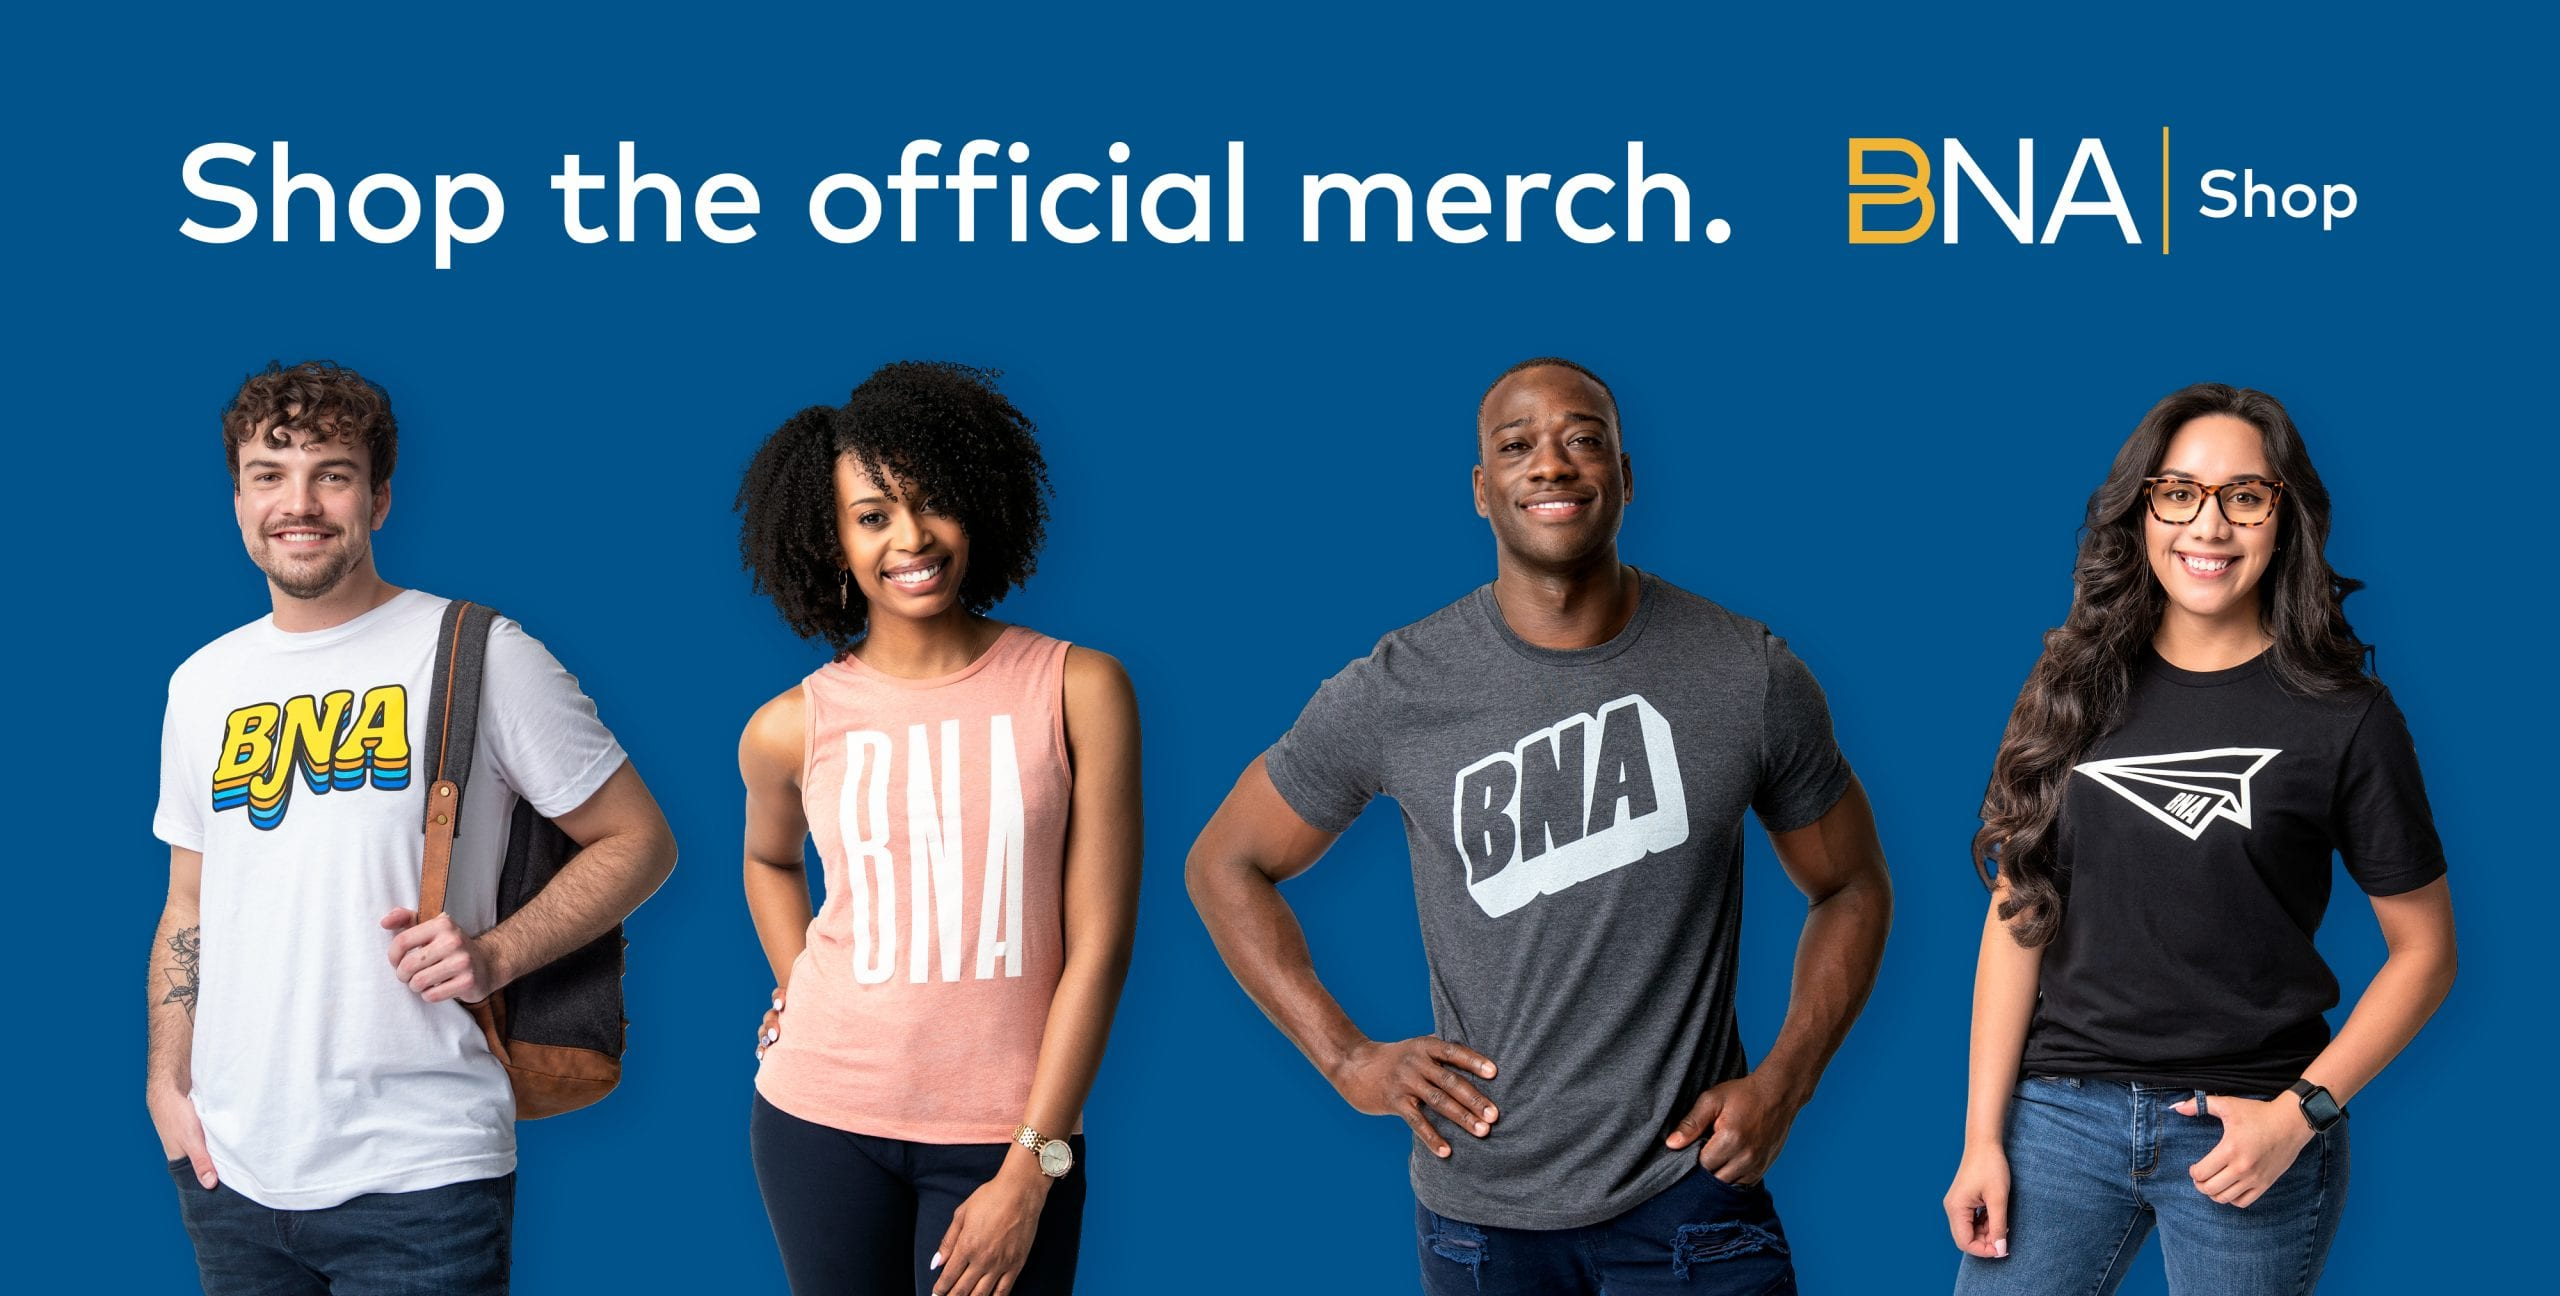 """Four people wearing BNA apparel with the text """"Shop the official merch"""""""